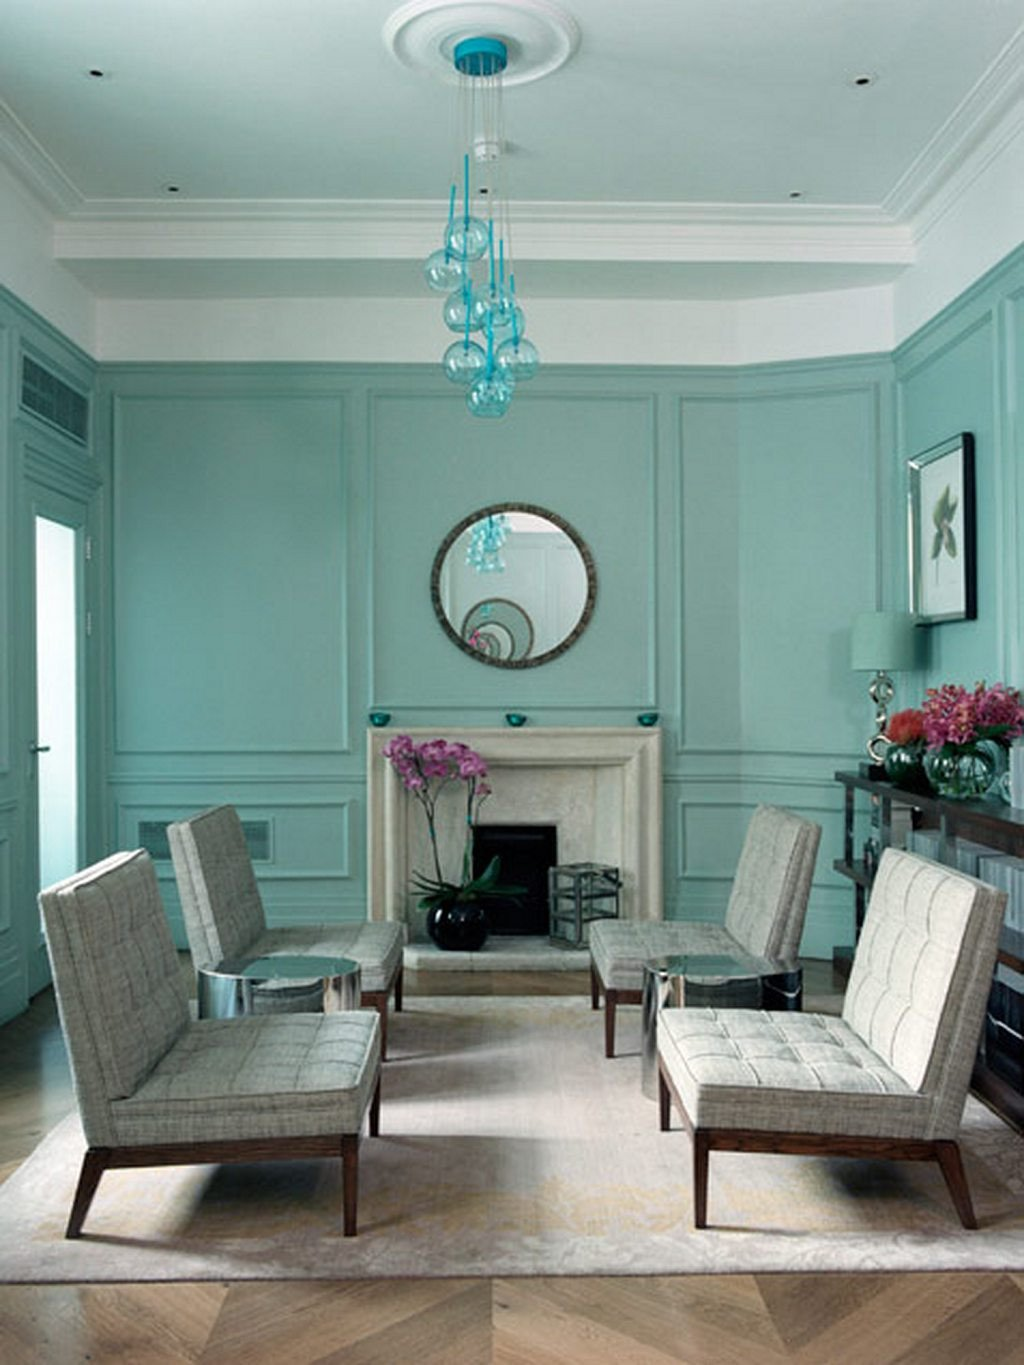 Traditional Blue Living Room Inspirational Traditional Blue Green Living Room In Midcentury Style